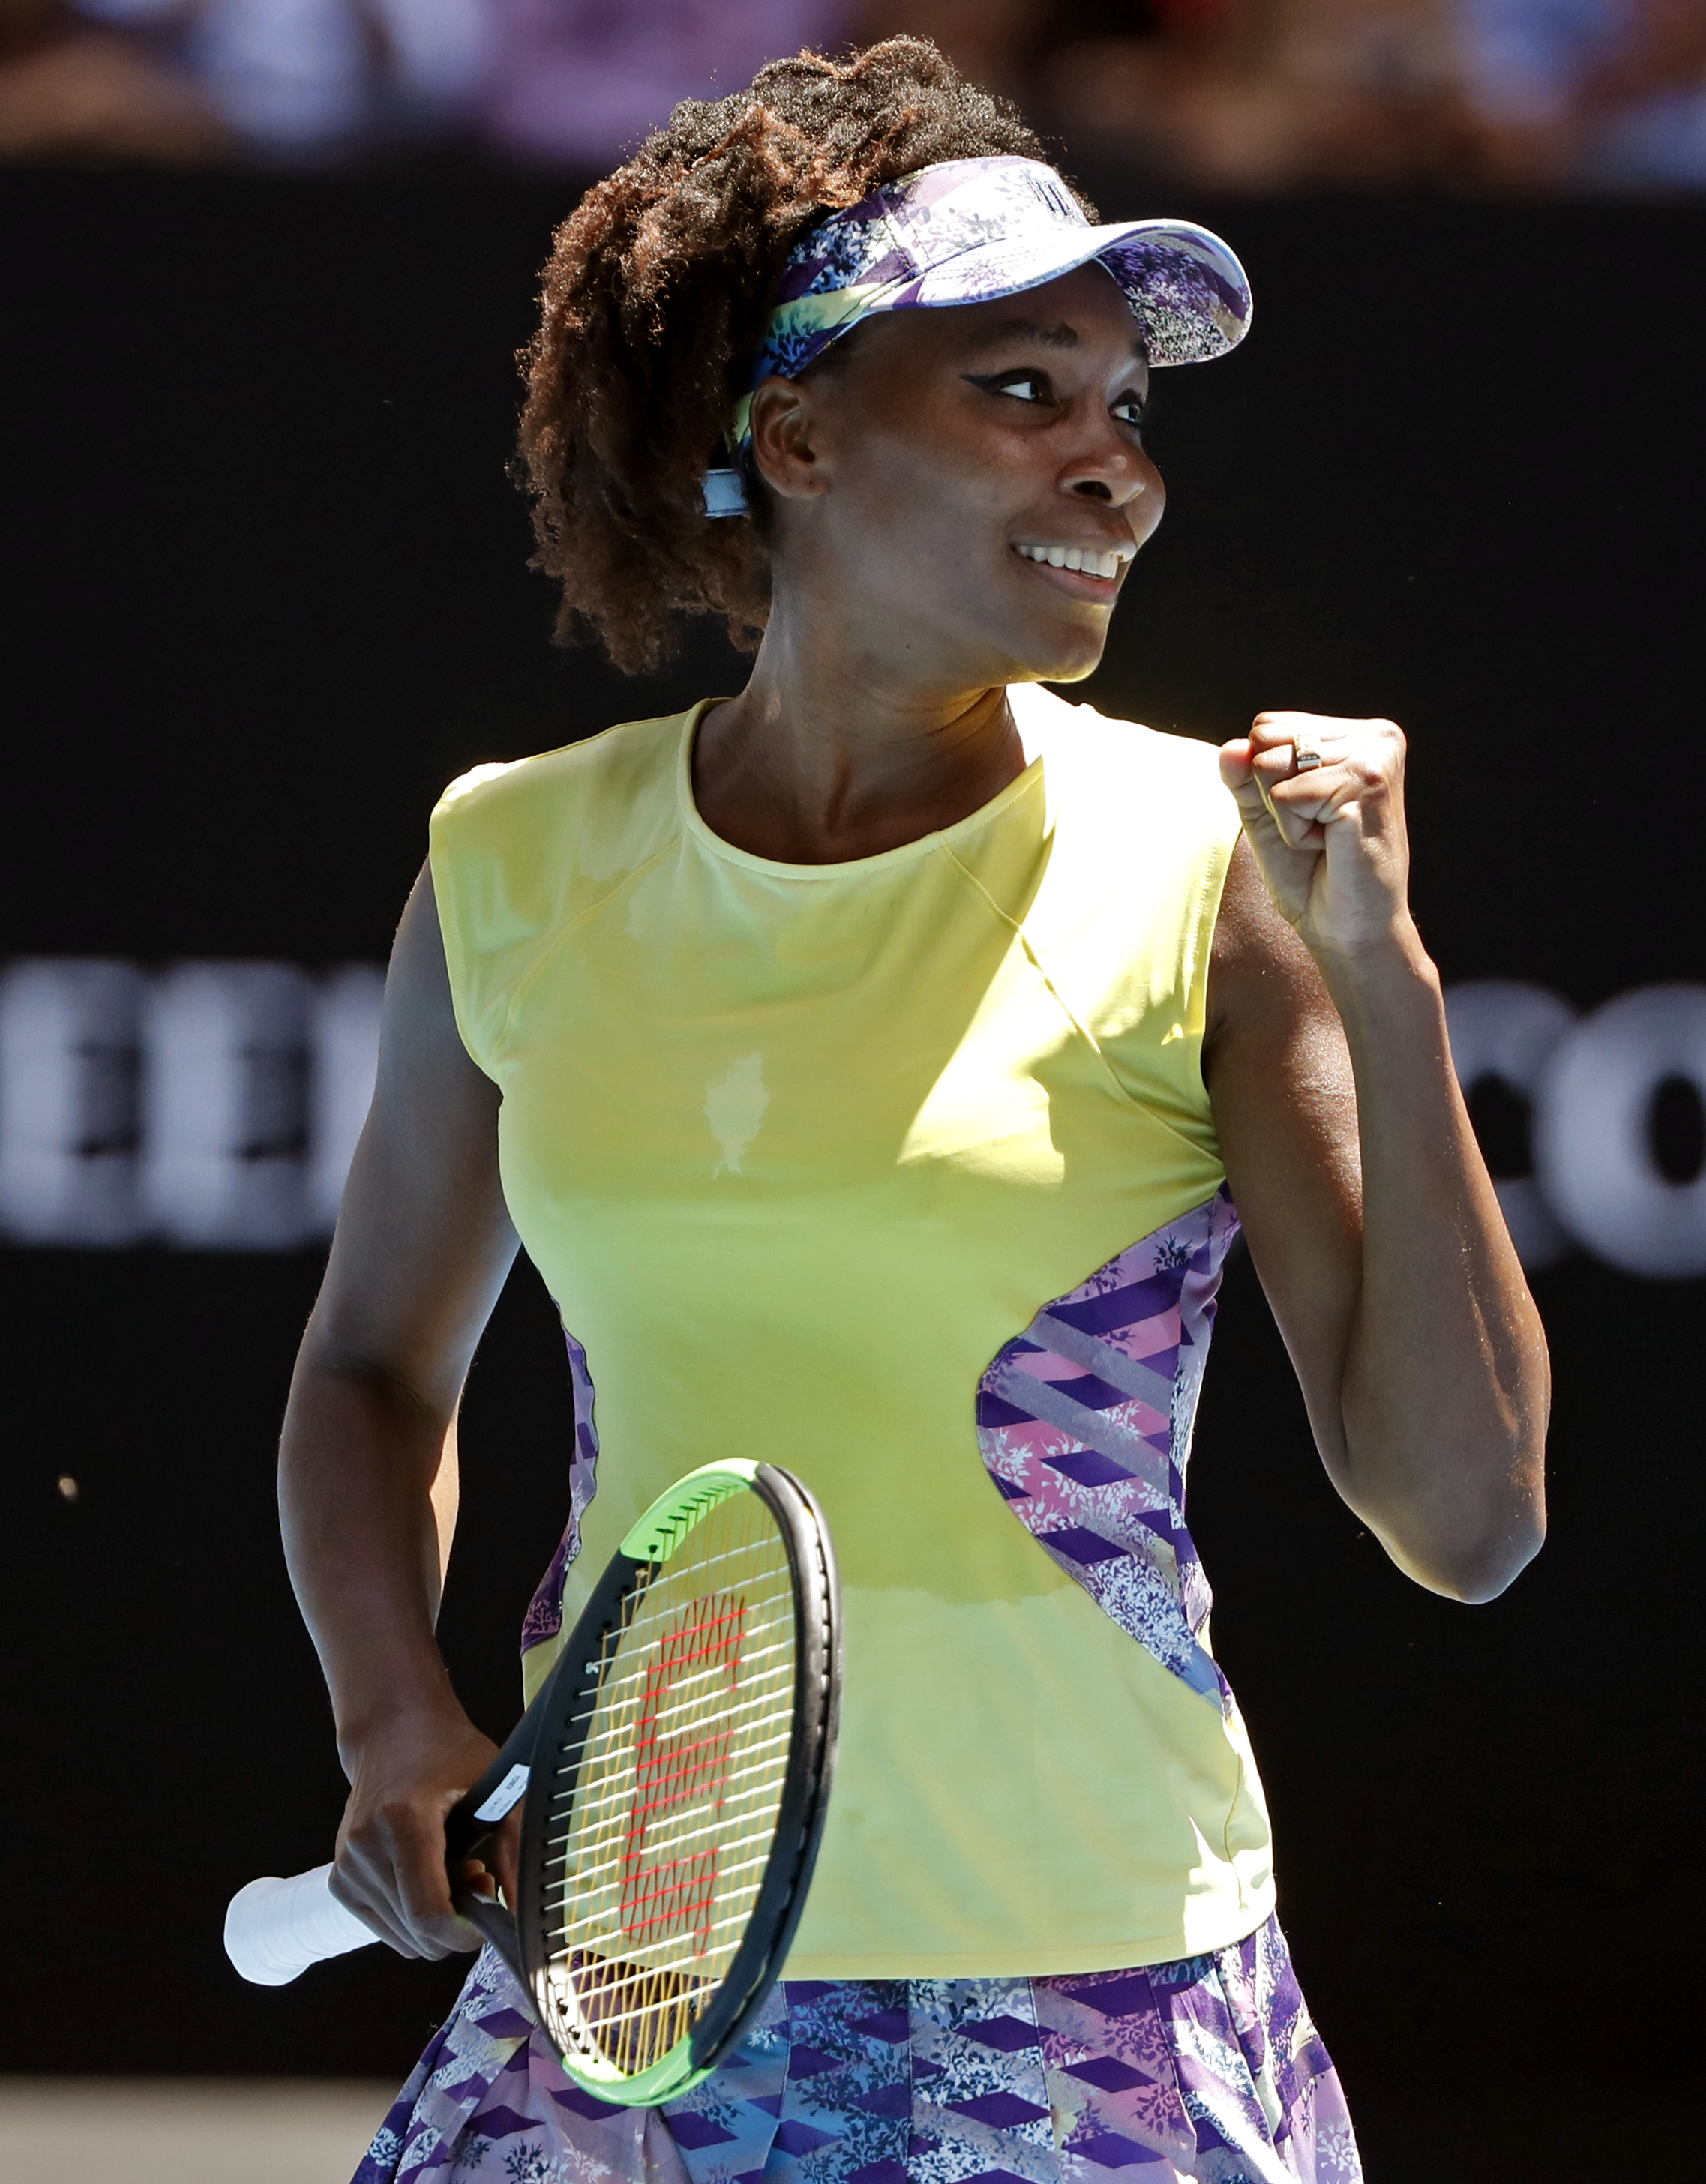 United States' Venus Williams celebrates a point win over Switzerland's Stefanie Voegele during their second round match at the Australian Open tennis championships in Melbourne, Australia, Wednesday, Jan. 18, 2017. (AP Photo/Dita Alangkara)